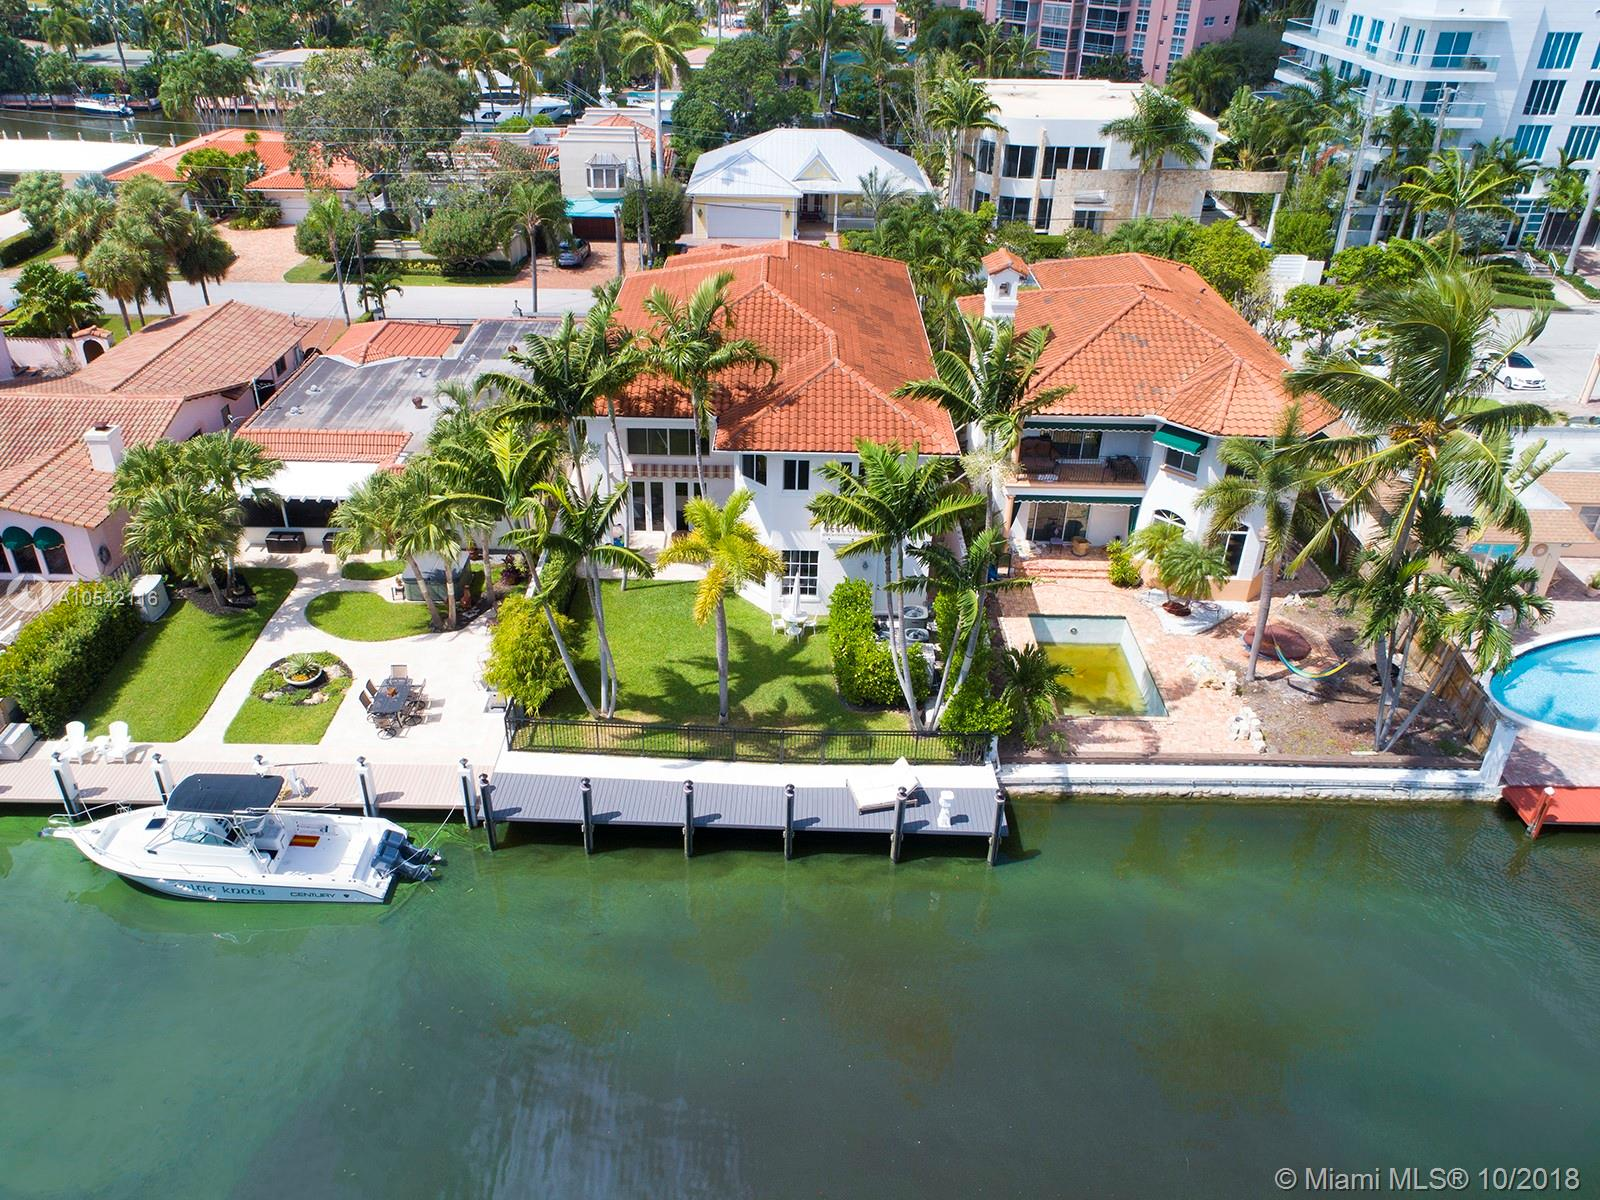 Dramatic Double Height Ceilings As You Enter This Exquisite And Largest 3/3.5 Waterfront Home On The South Side Of Prestigious Las Olas Isles Affording Quick Ocean Access. The Home Has Gone Thru An Extensive Renovation Of Over $400K By Current Owners. A Brand New Sea Wall & Dock, All Impact Glass By Pgt, Beautiful Dark Oak Wood Floors Throughout. The Kitchen Has All New Top Of The Line Appliances: Large Sub Zero, 6 Burner Gas Wolf Stove With A Custom Ventahood, 2 Wolf Wall Ovens, Double White Ceramic Kitchen Sink By Shaws Original, Quarts Counter Tops And Well Appointed Tile Walls Are Some Of The Special Features On This Large Waterfront Home. Other Features Include Pantry And Wine Room, Elevator, 2 Car Garage, 3 A/C Zones (Trane Units 2 Replaced In 2016 And 1 In 2012) And Gas Generator.